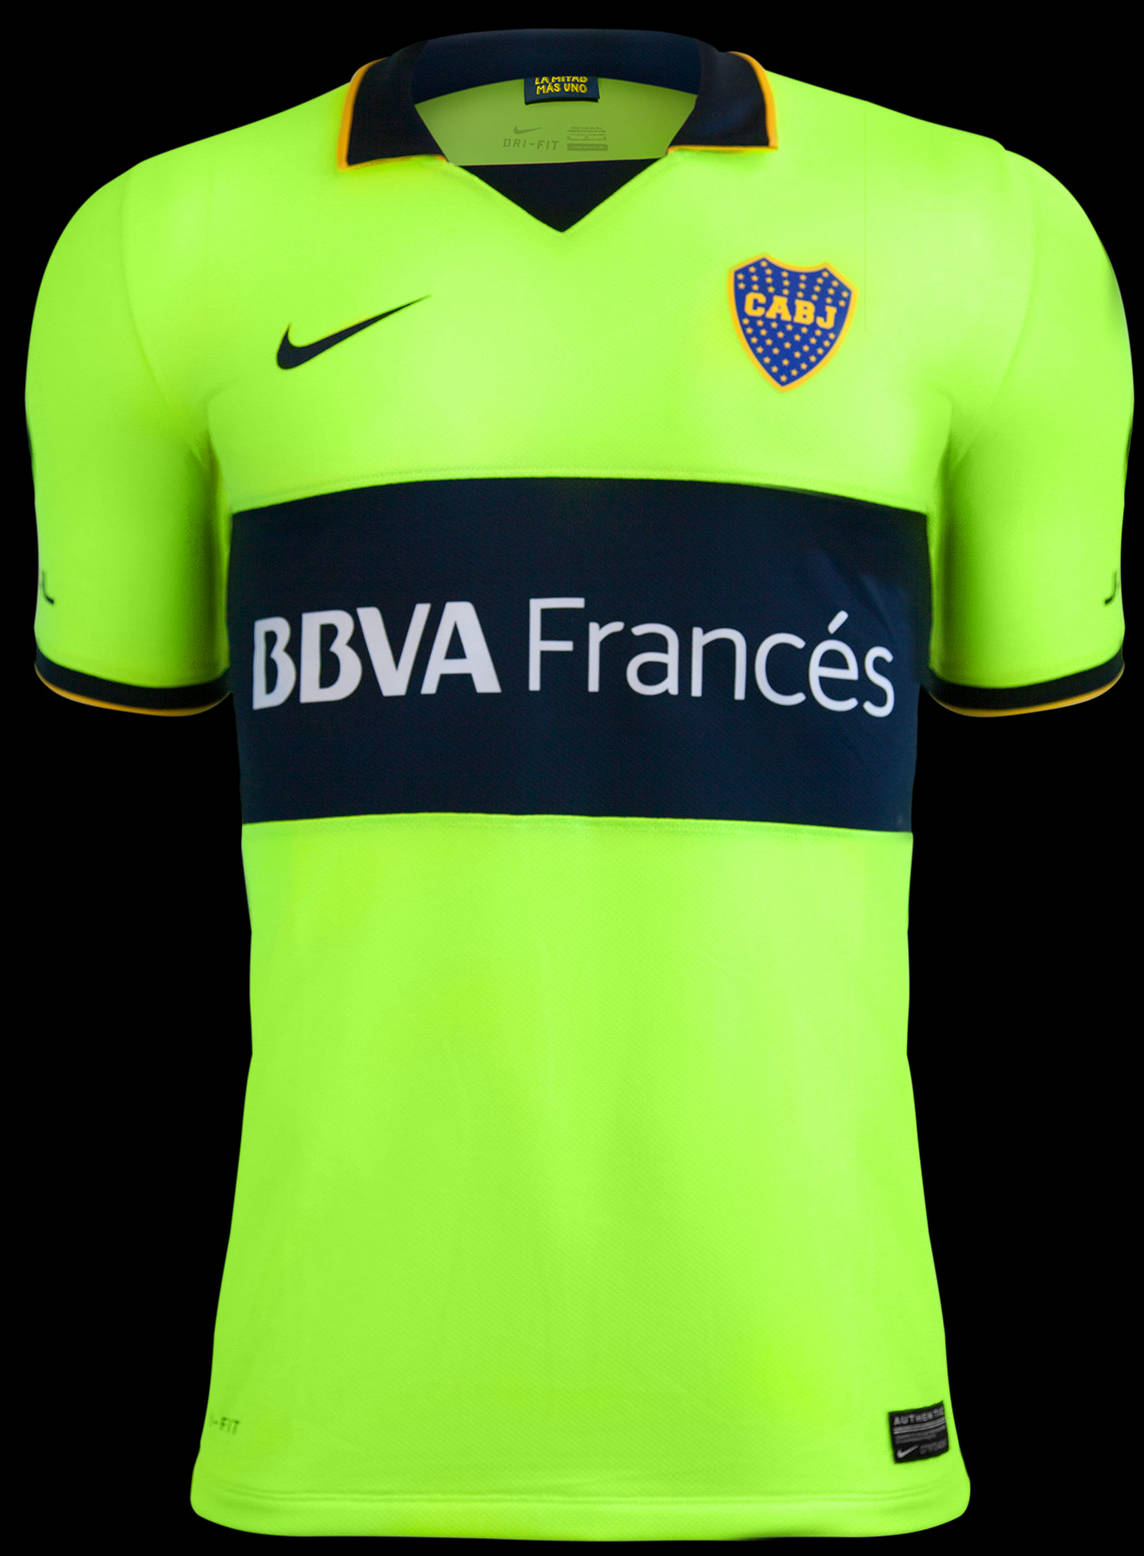 kits, numbers, fonts REQUESTS - Page 4 Boca+Juniors+2014+Third+Kit